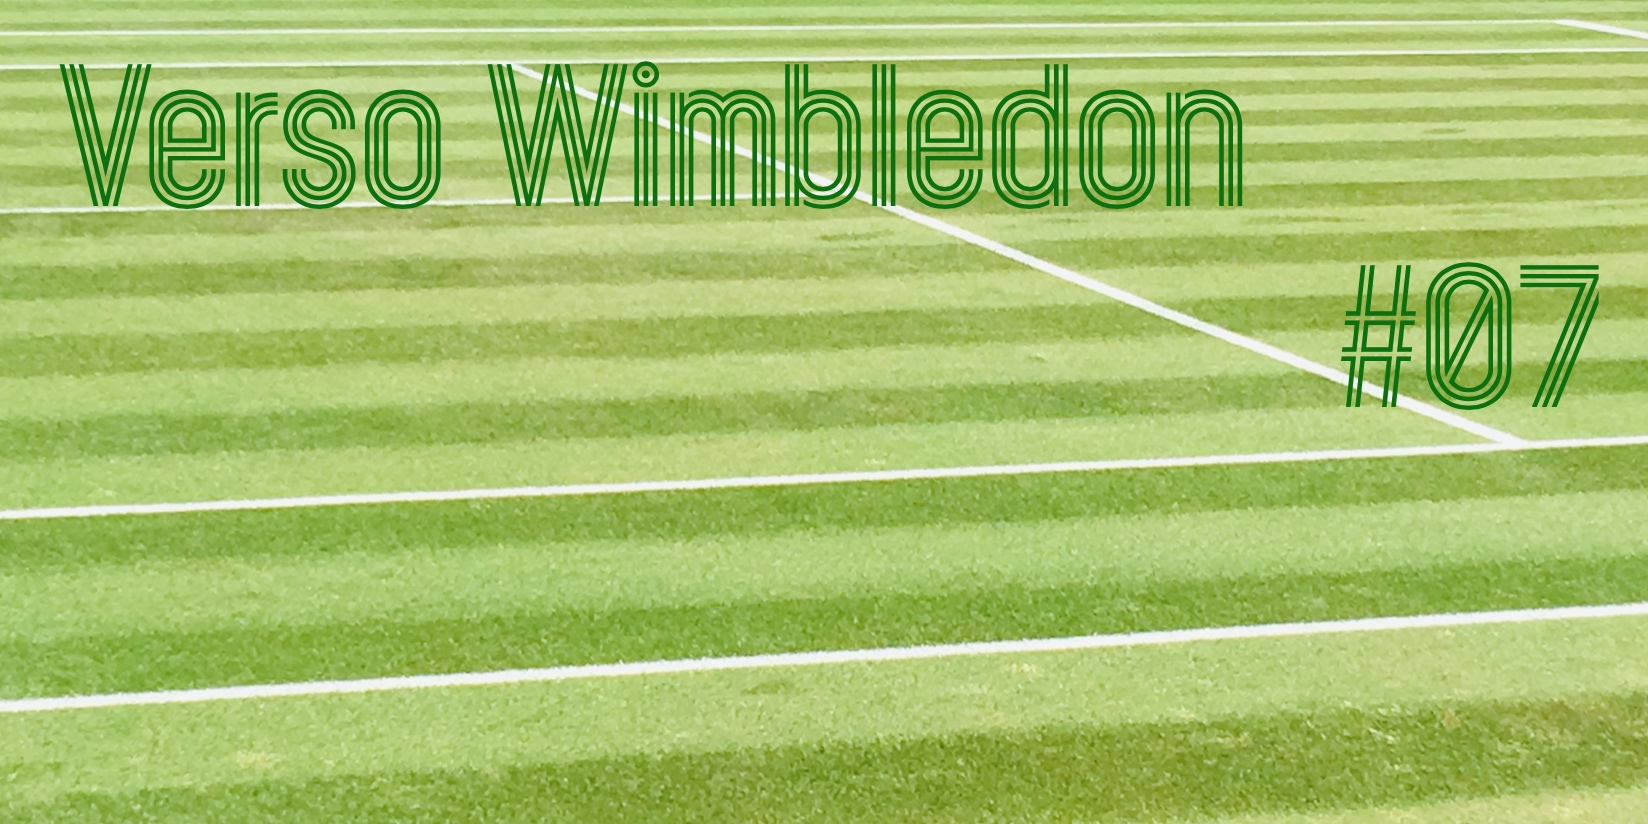 Verso Wimbledon #7 - settesei.it